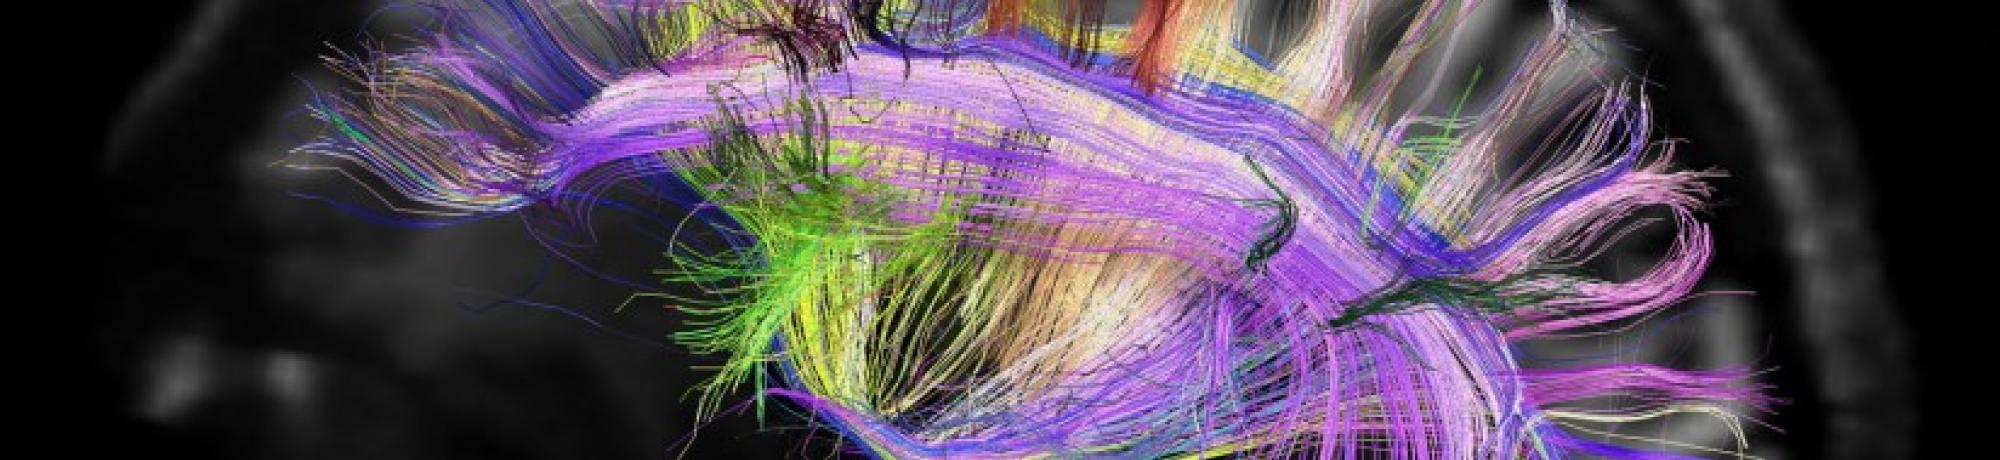 Artistic rendition of mapping the human brain with colored lines